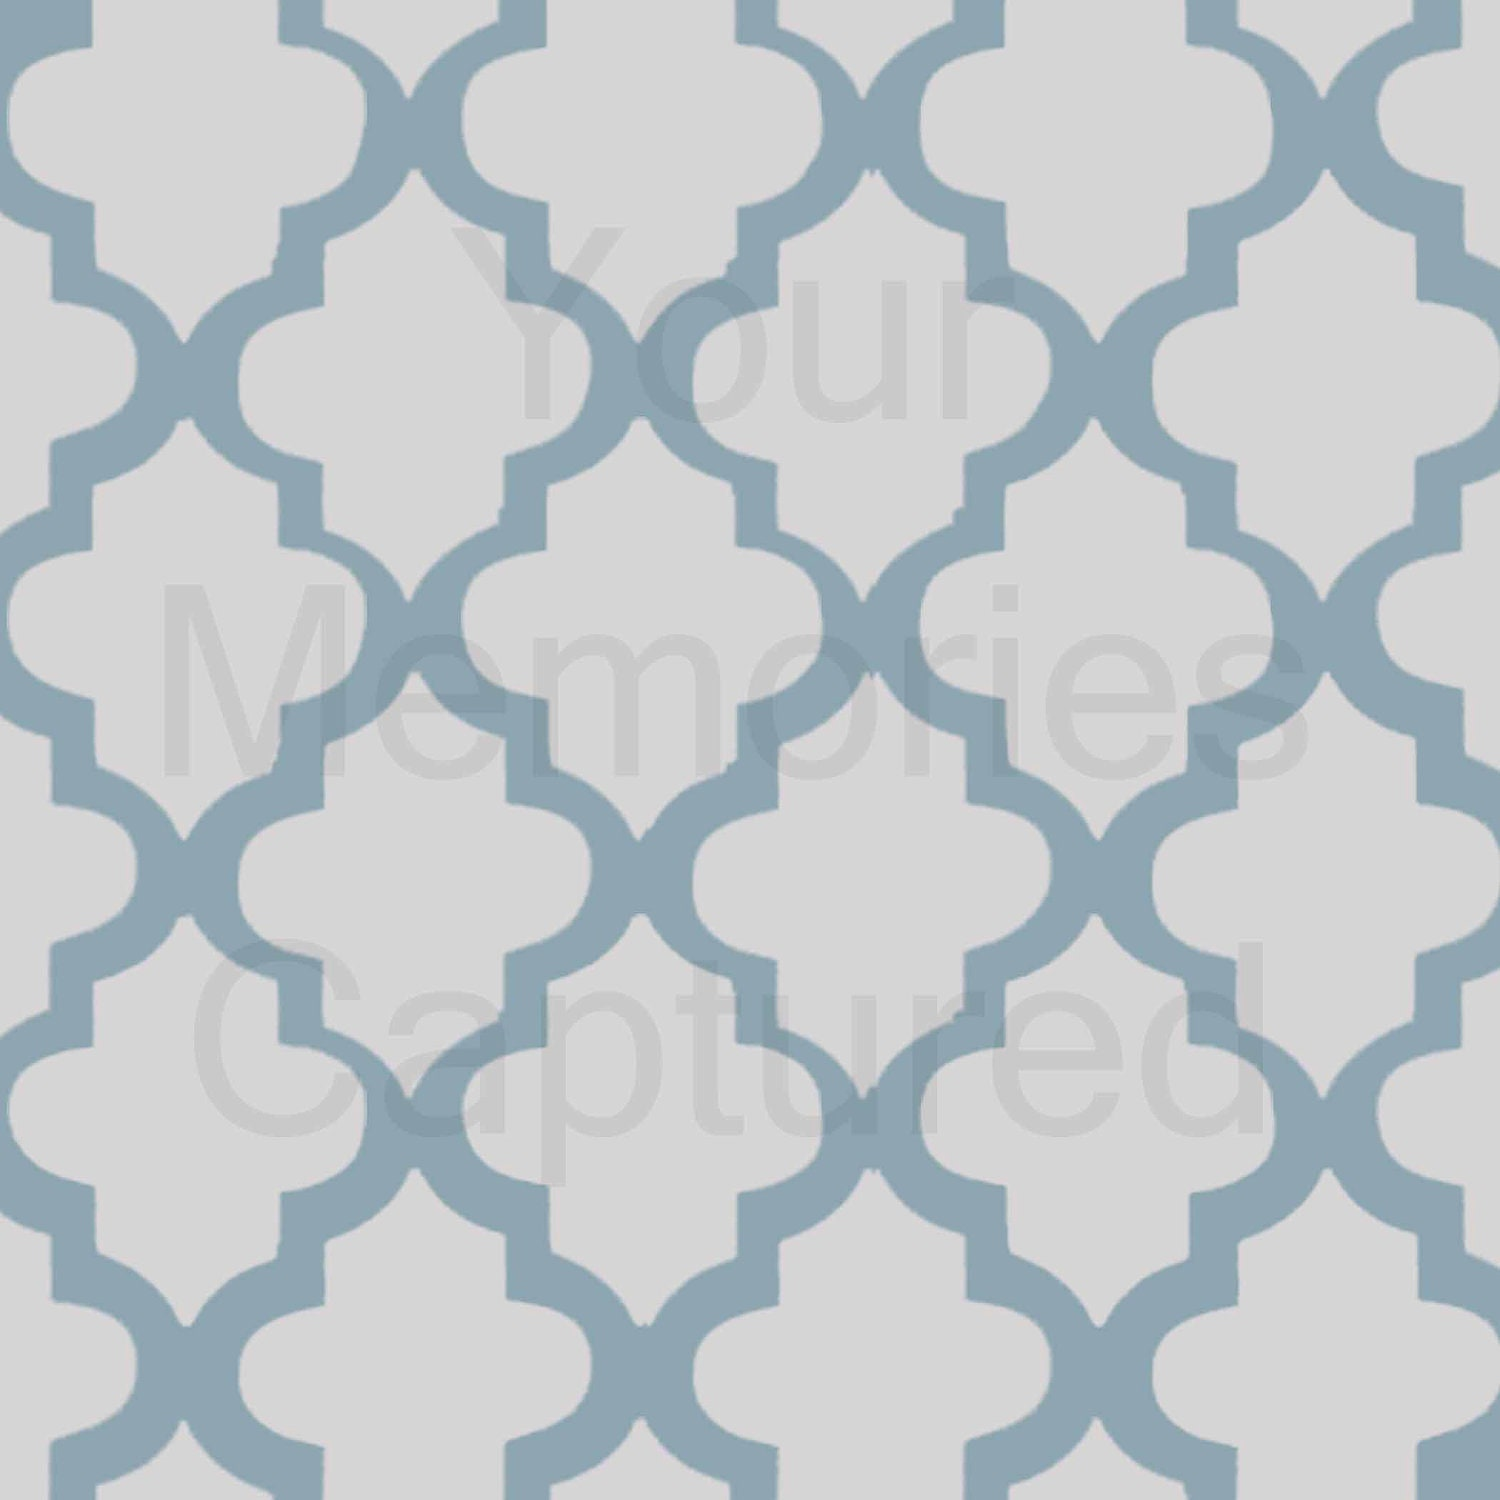 Moroccan tile pattern curtains - Moroccan Tile Pattern Reusable Stencil For Fabric Wood Paper